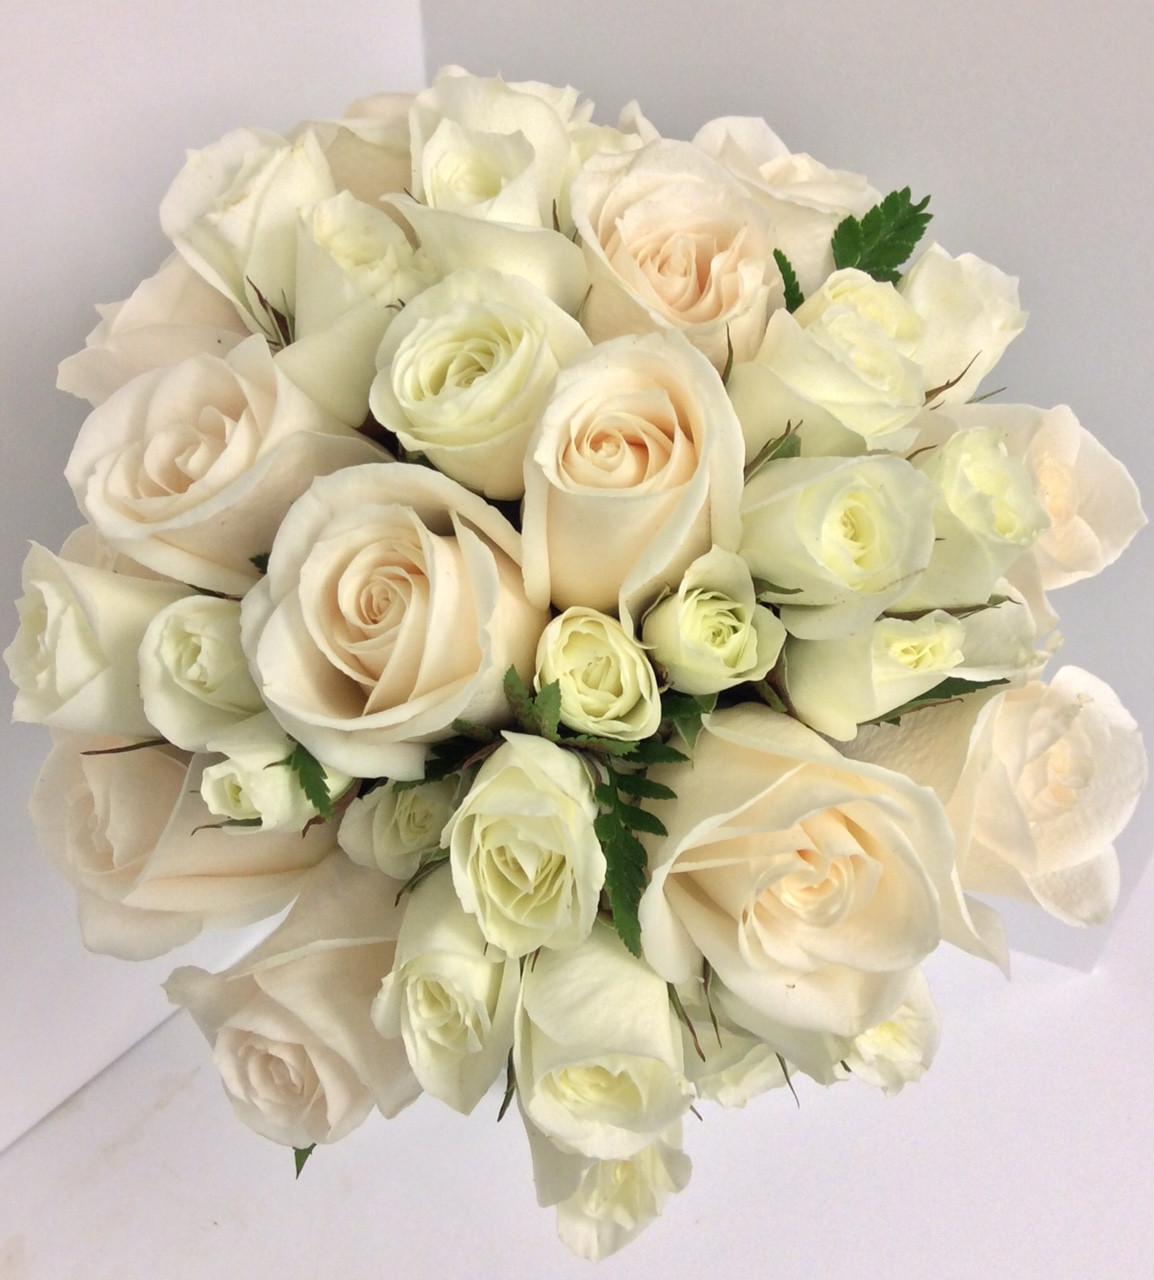 Hand Tied Bridal Bouquet With Standard And Spray Roses In Whites And